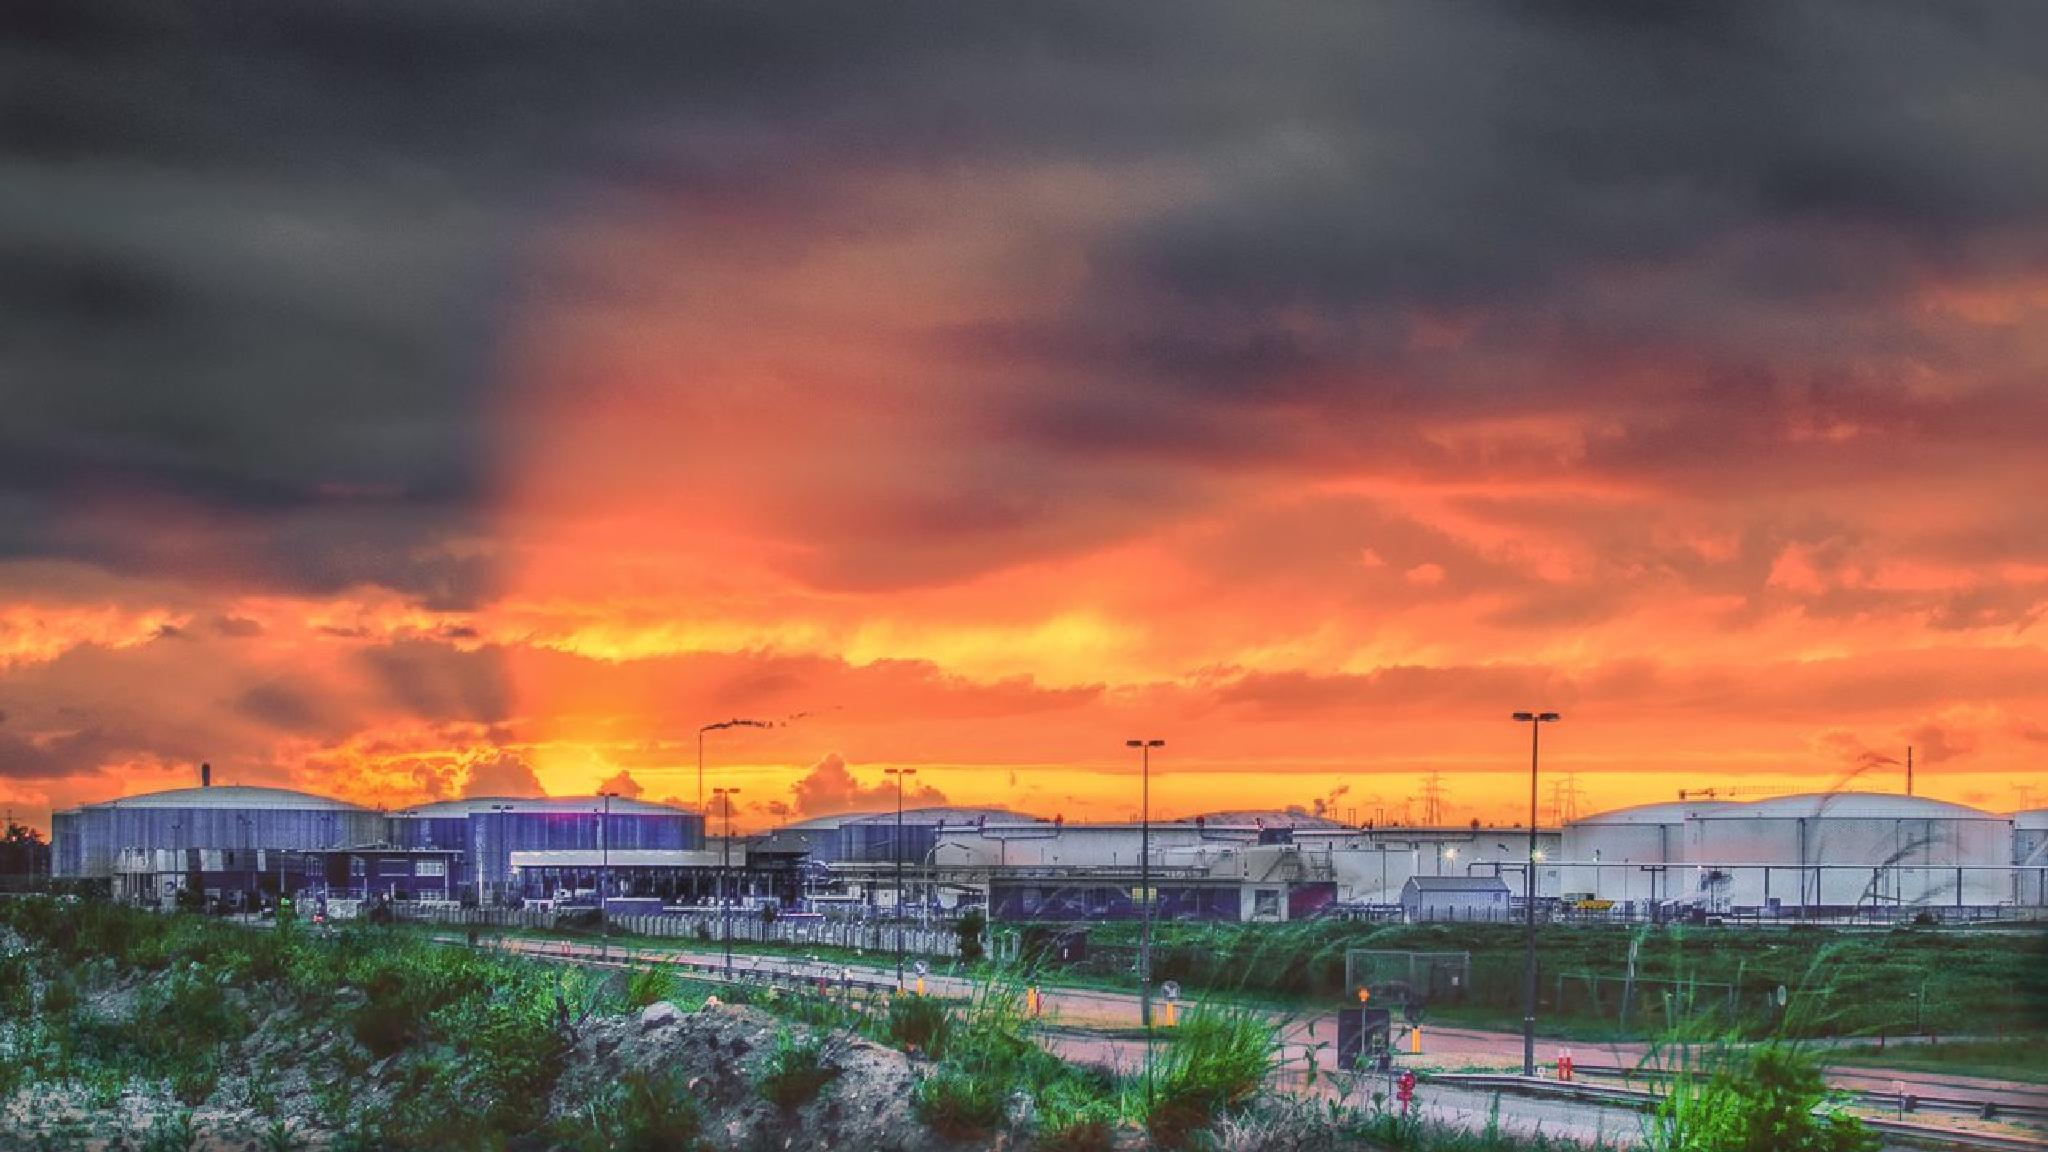 Sunset by frans.ditucci